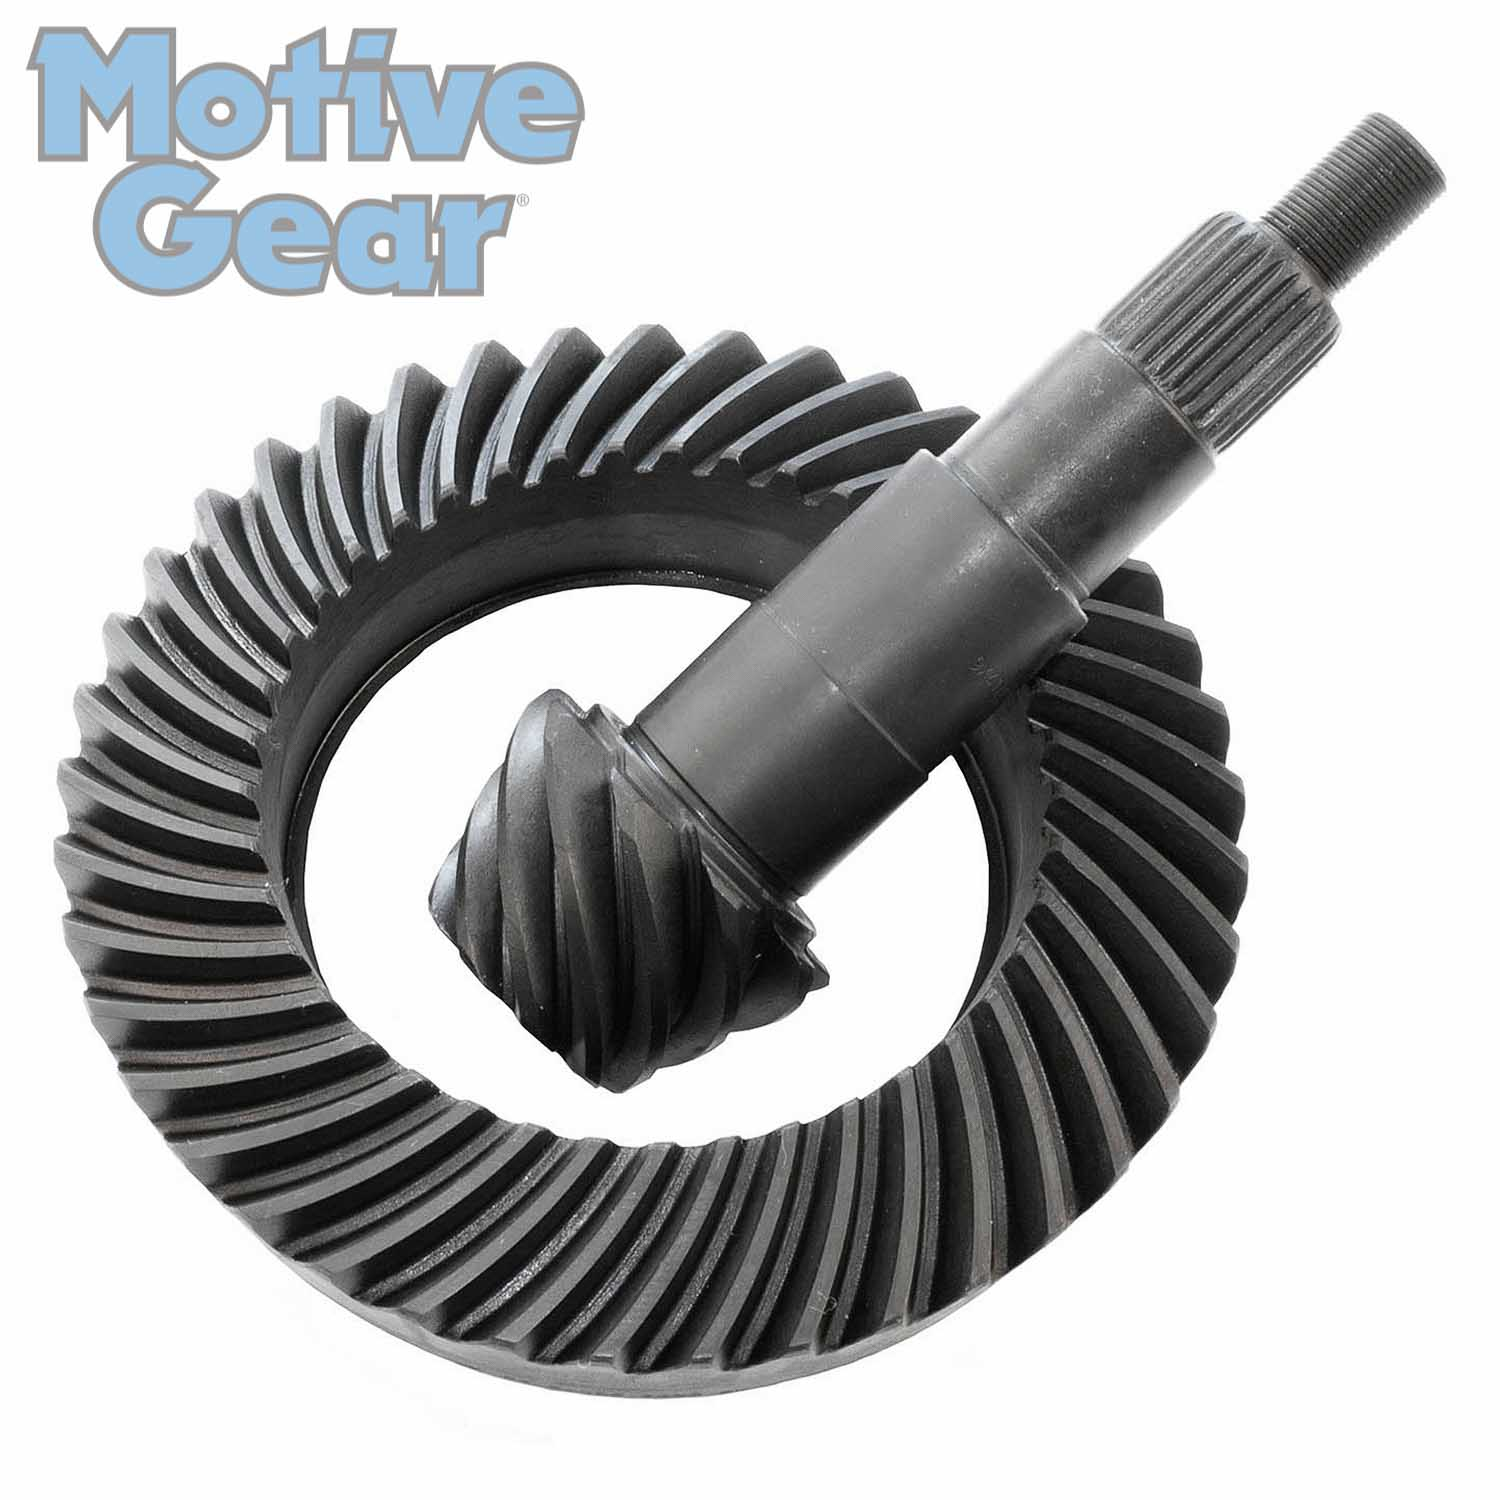 Ford 7.5 Motive Gear Ring and Pinion Gear Set